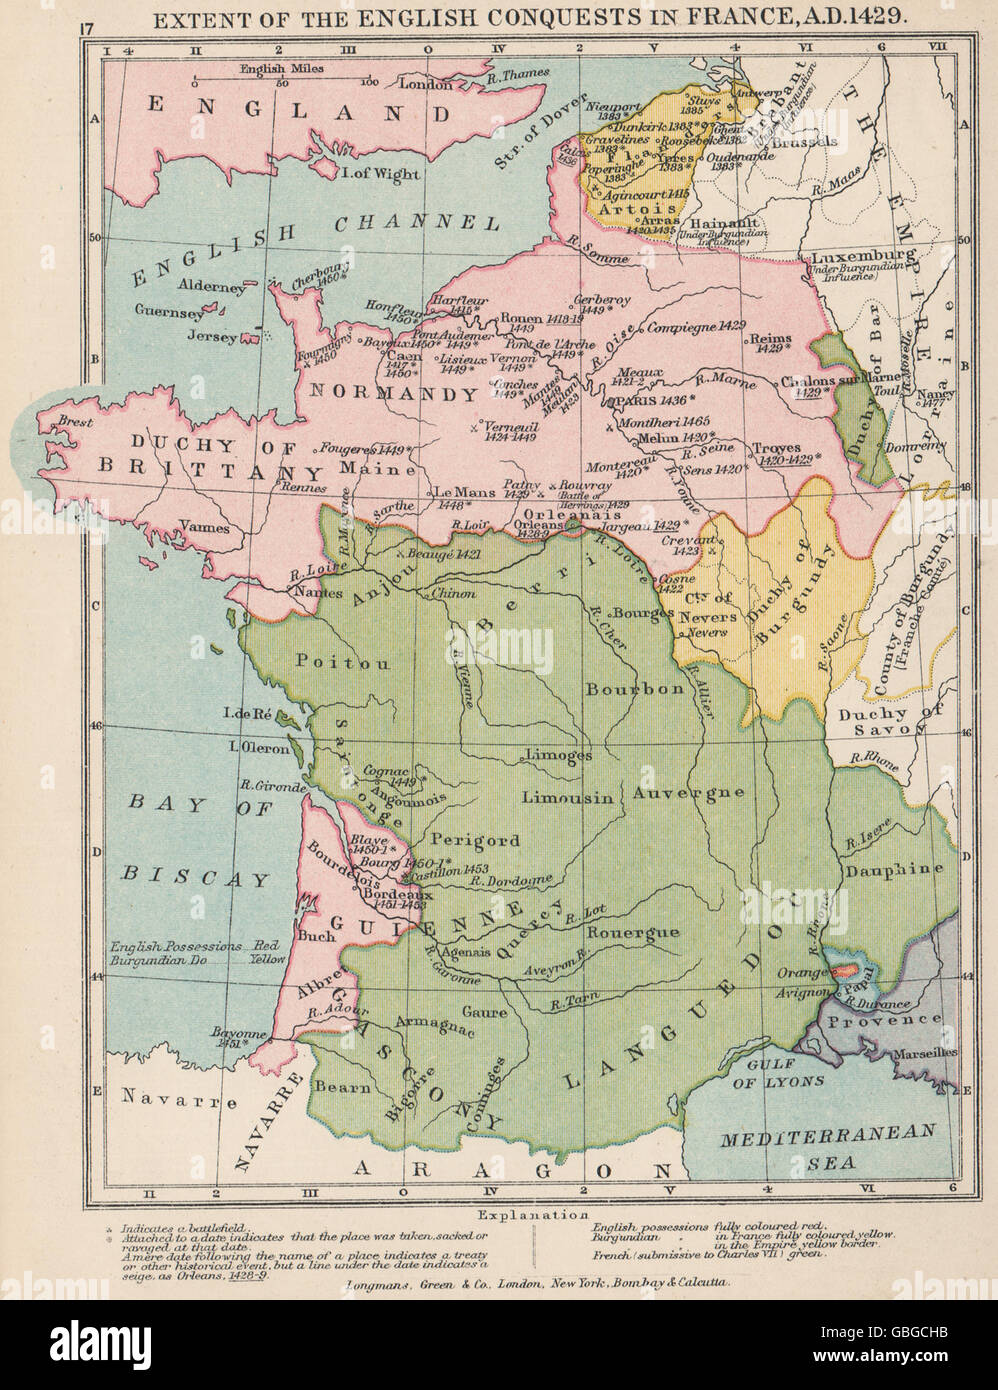 HUNDRED YEARS WAR: English Conquests in France, 1429, 1907 antique map - Stock Image